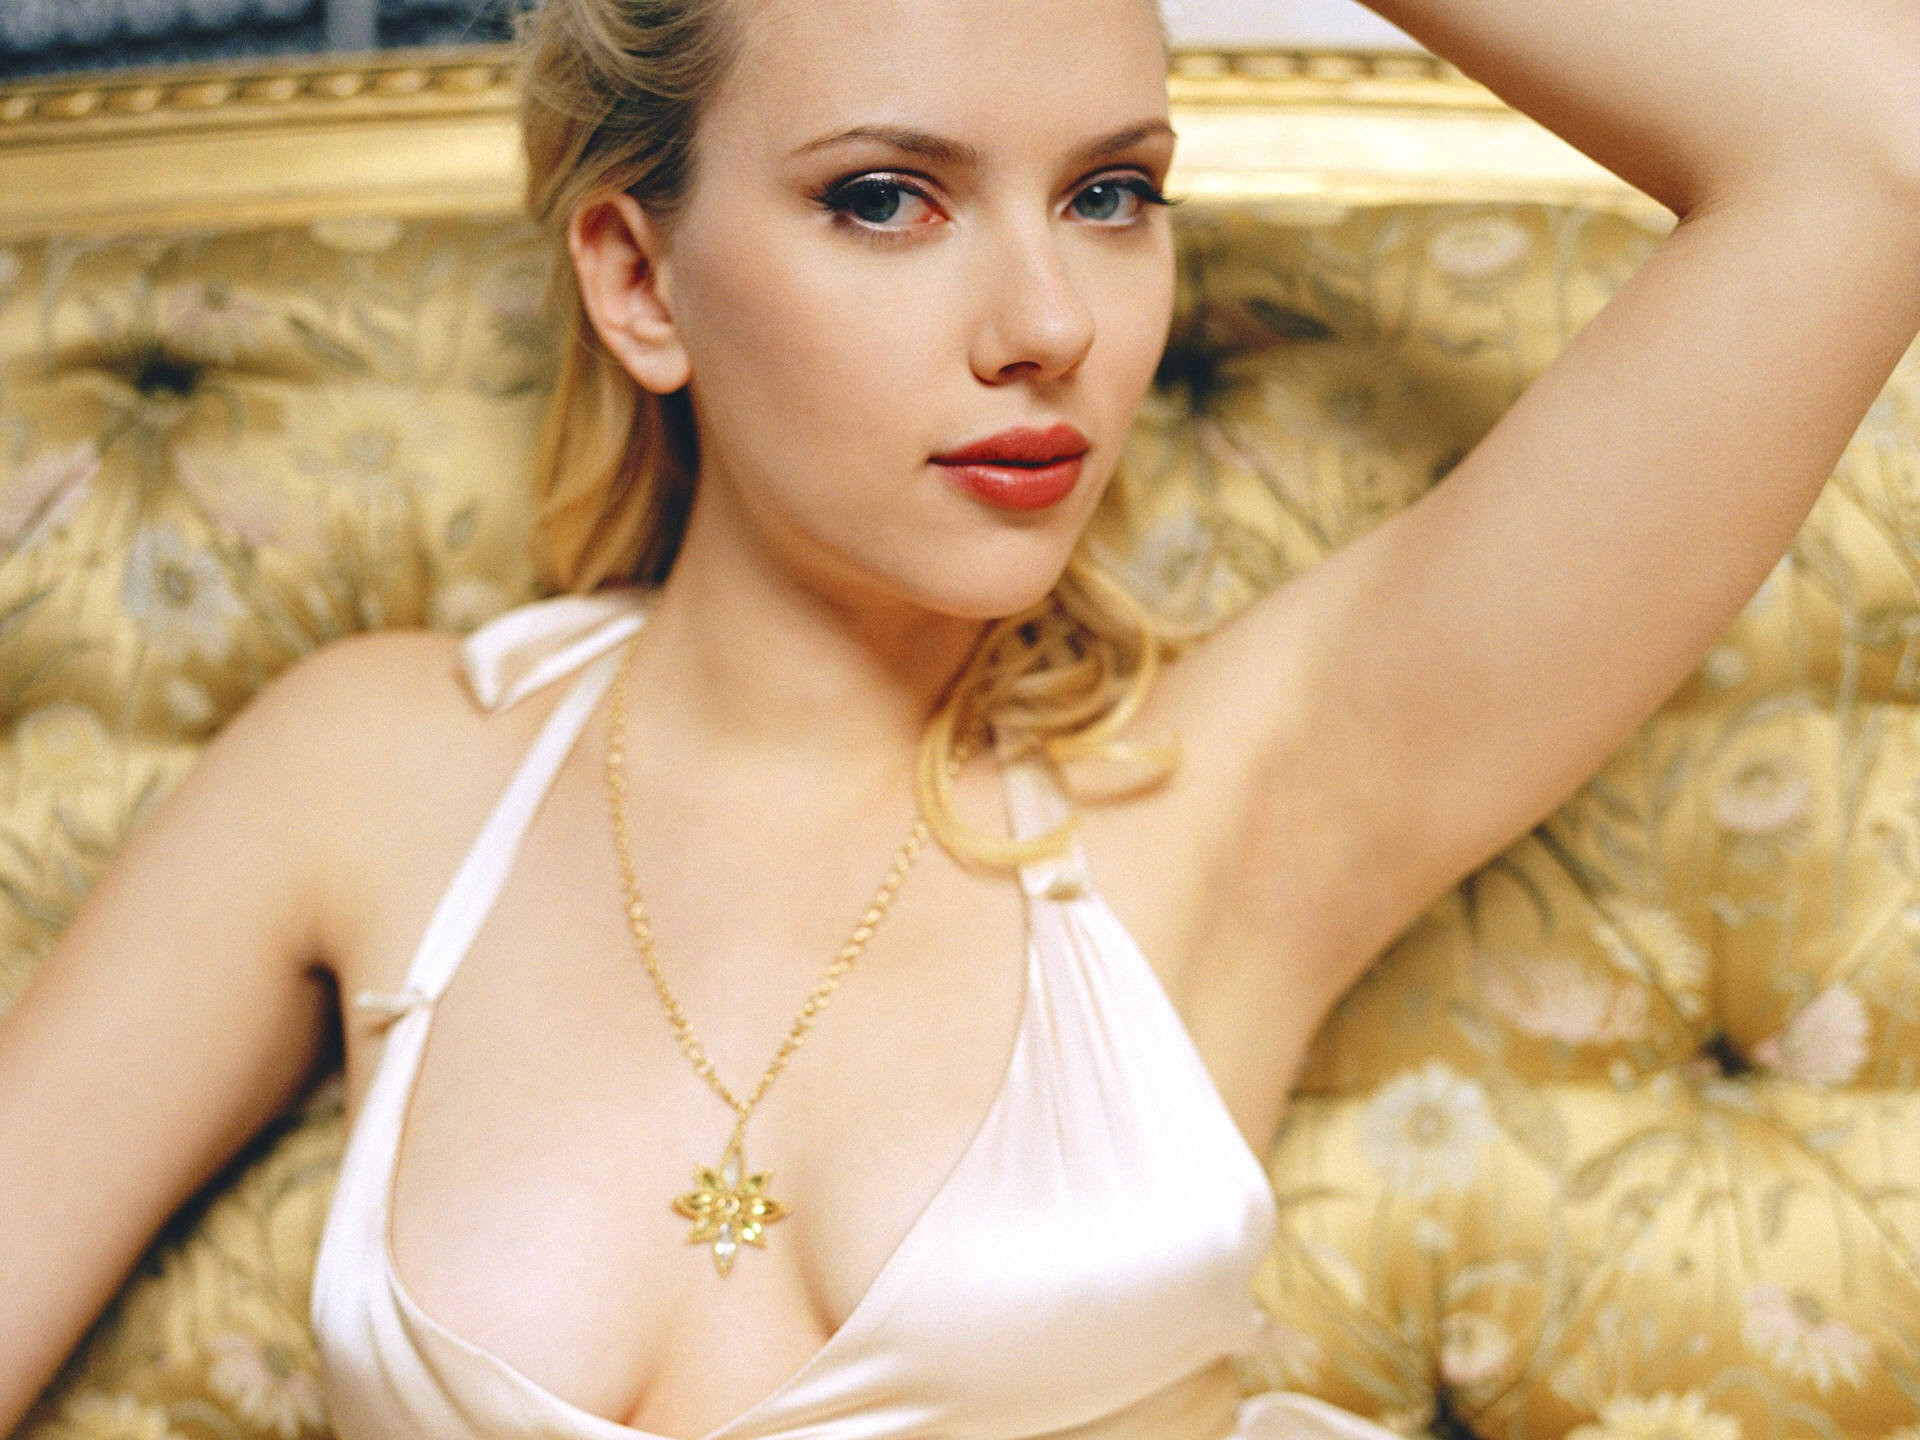 London june 7 actress scarlett johansson is seen as a young liberal